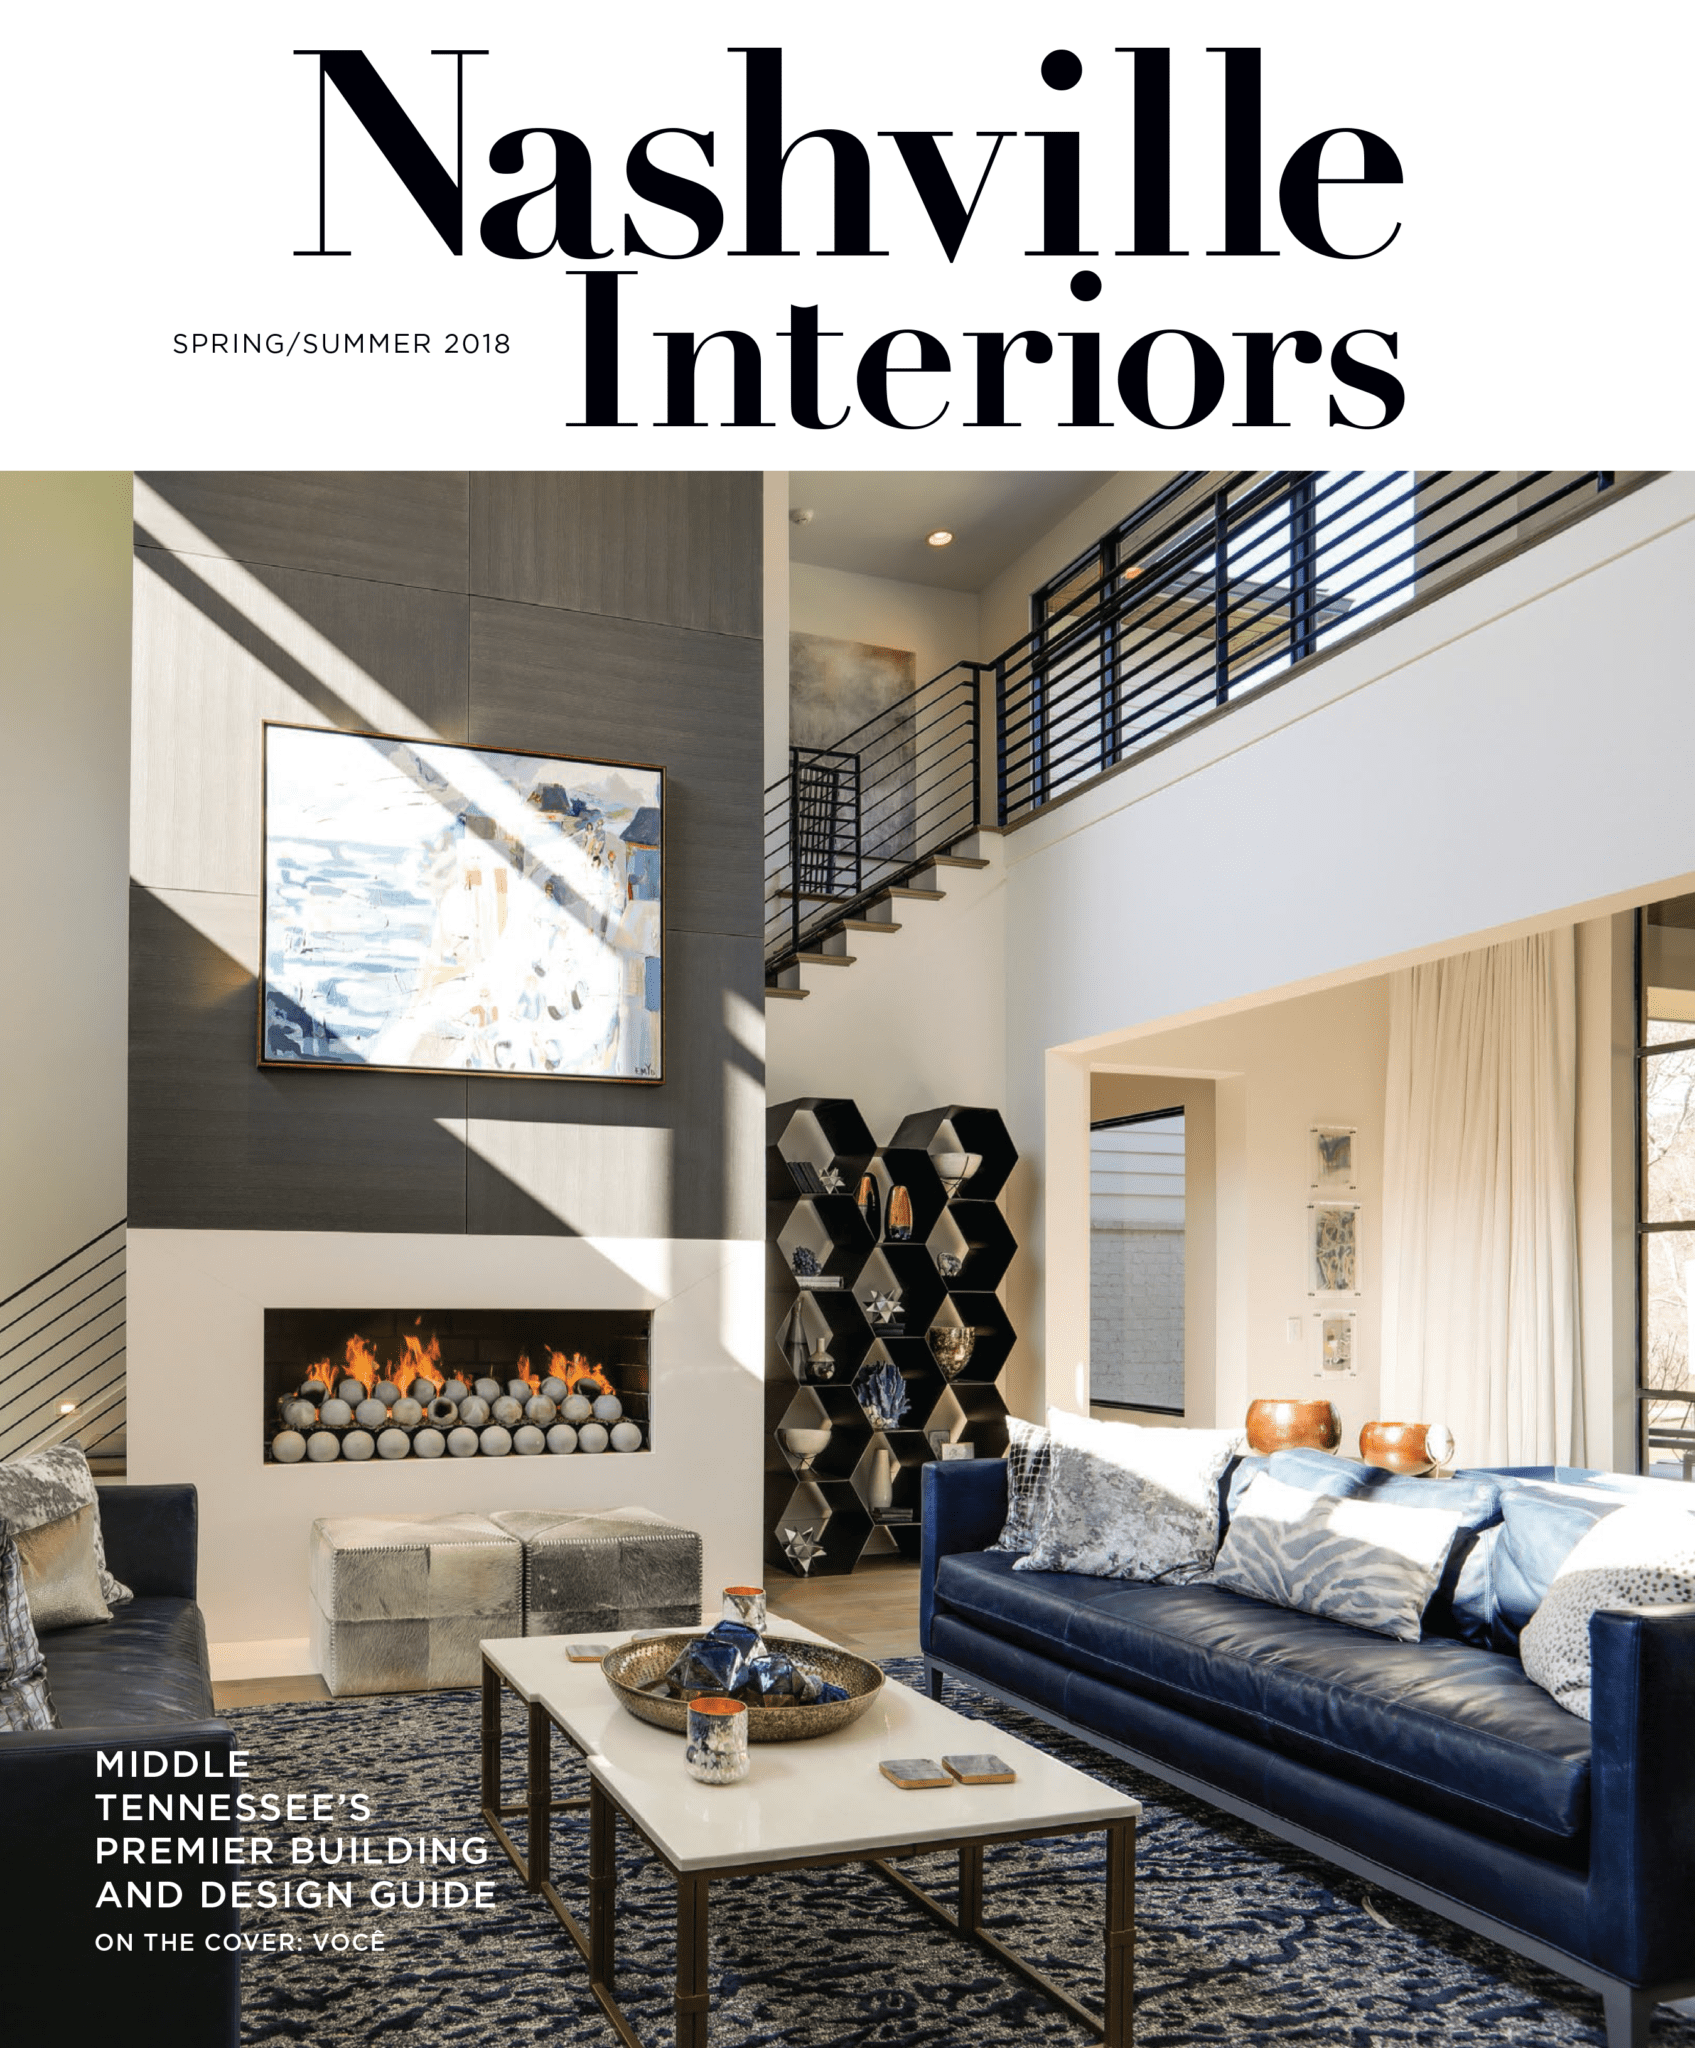 Nashville Interiors Spring/Summer of 2018 Cover